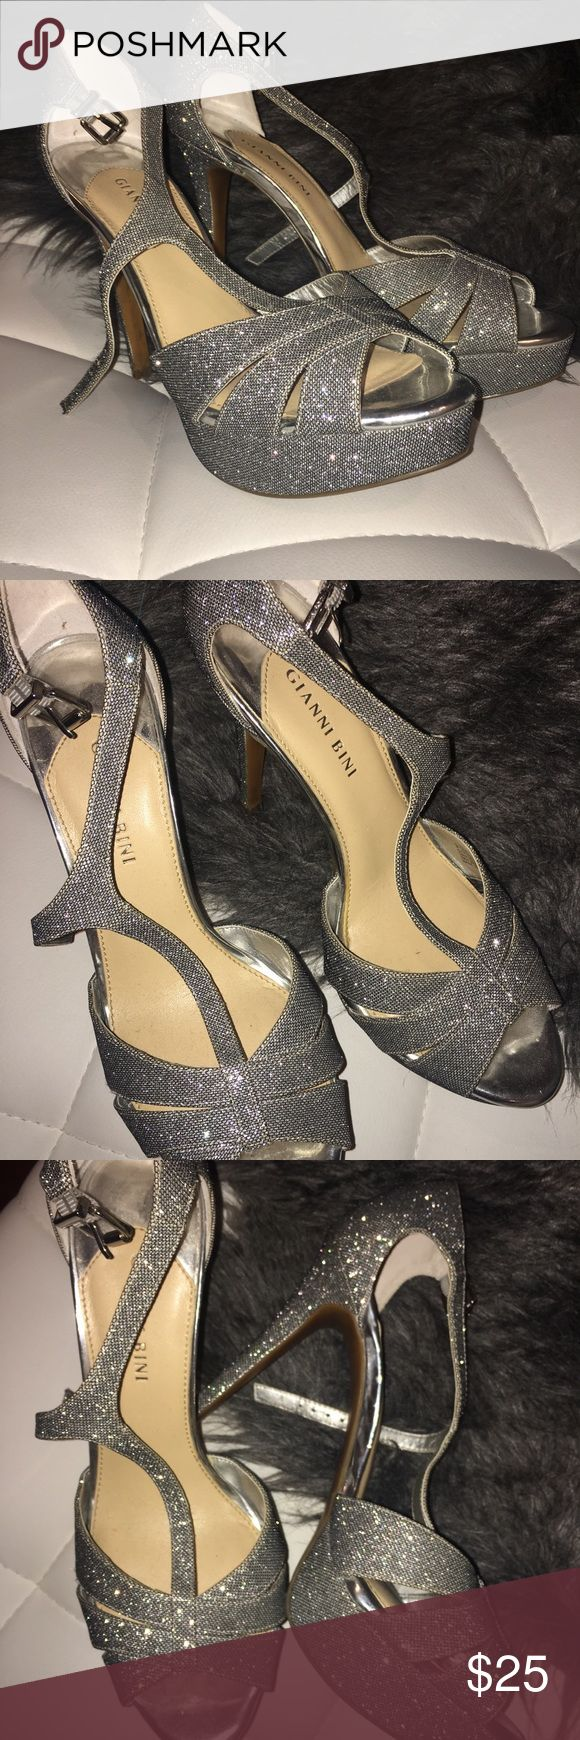 Silver sparkly heels High heels Gianni Bini Shoes Heels